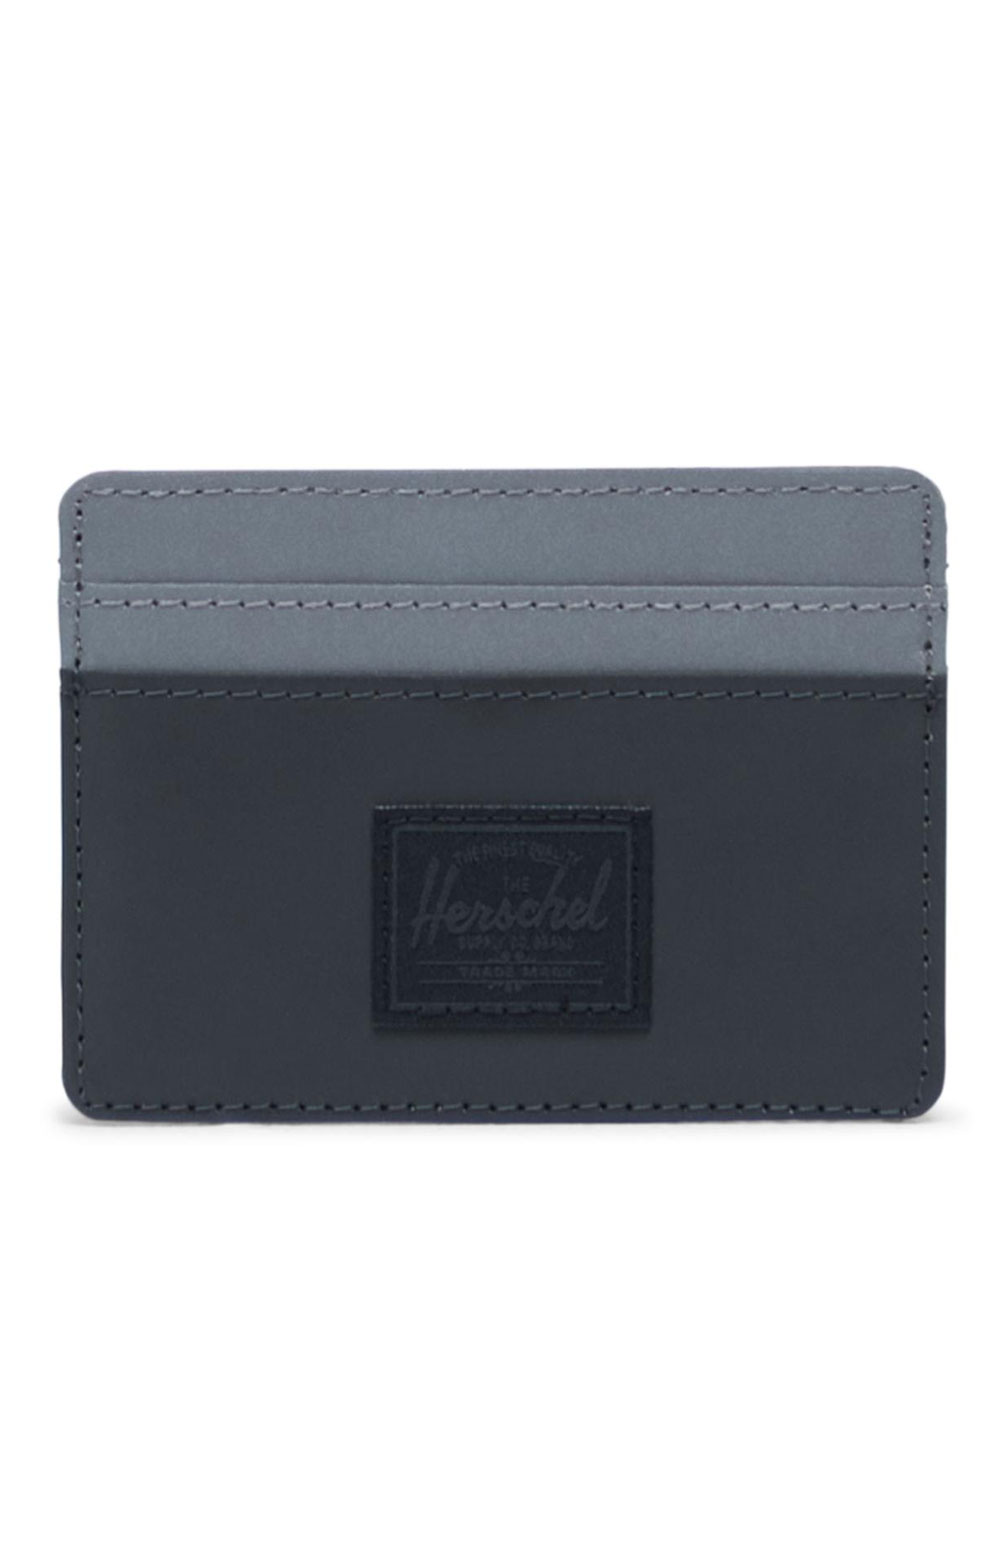 Charlie Reflective Wallet - Black/Silver